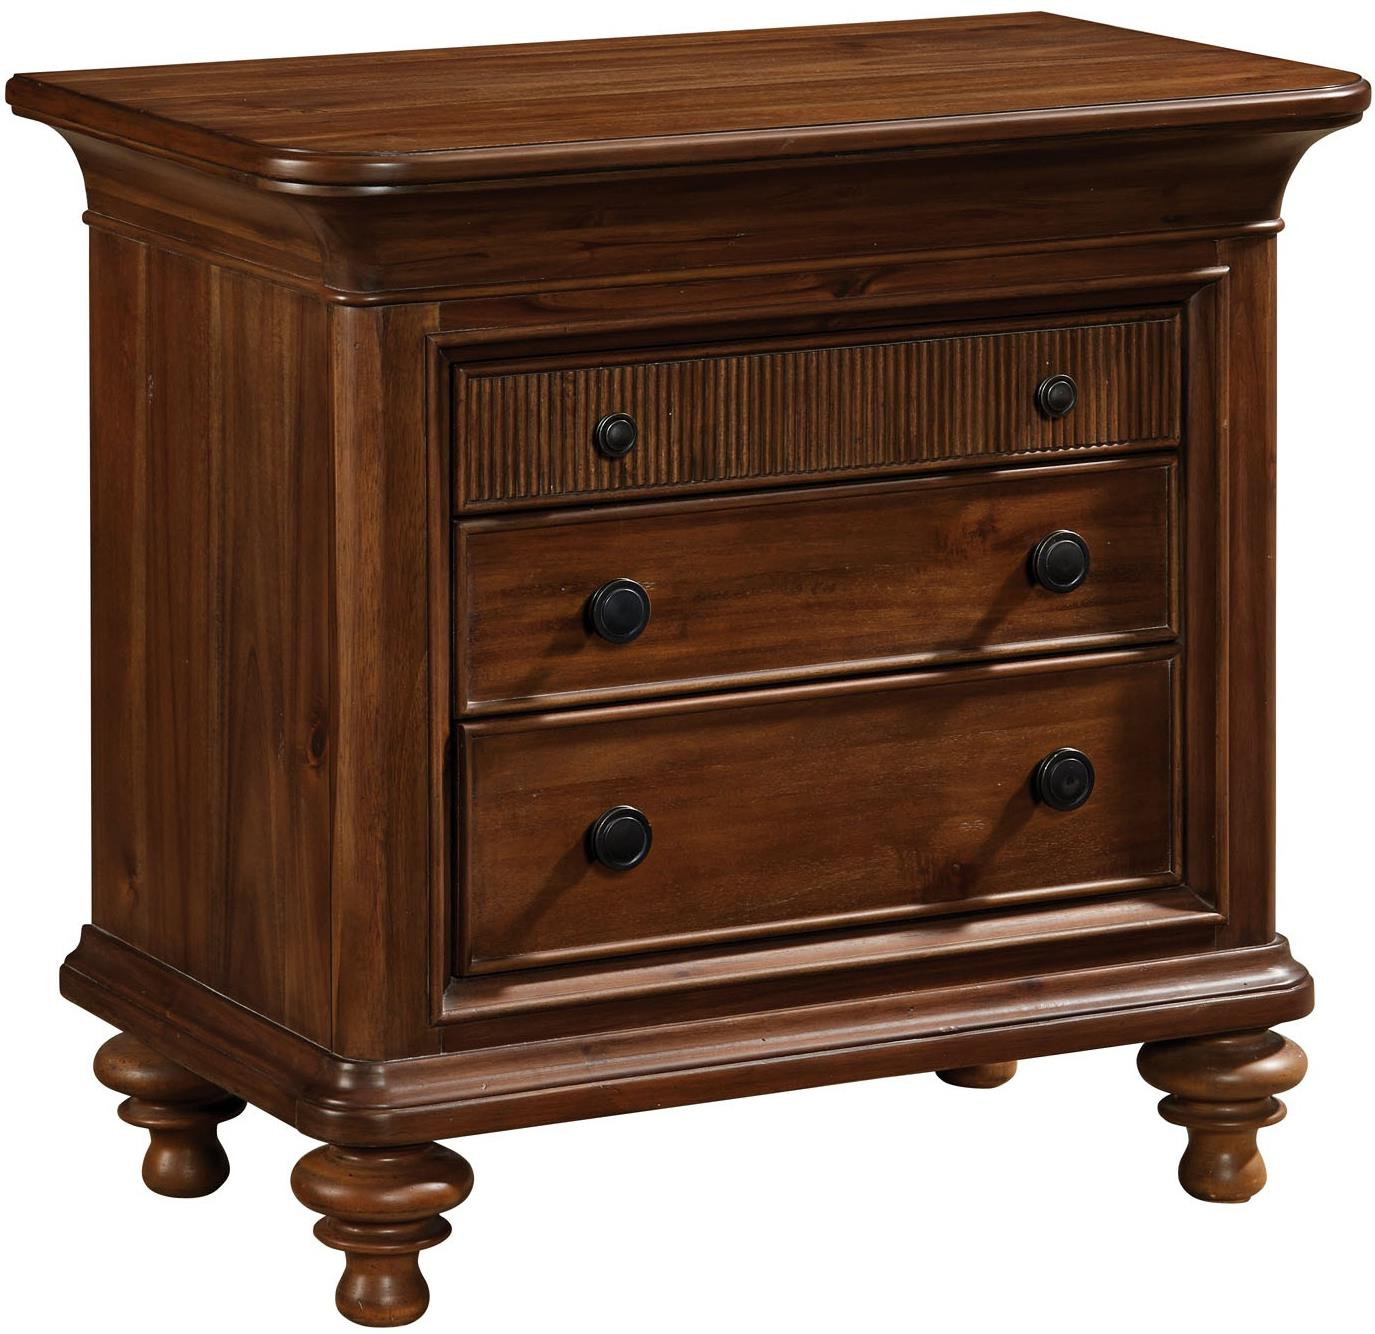 Broyhill Furniture Cascade Nightstand with 3 Drawers